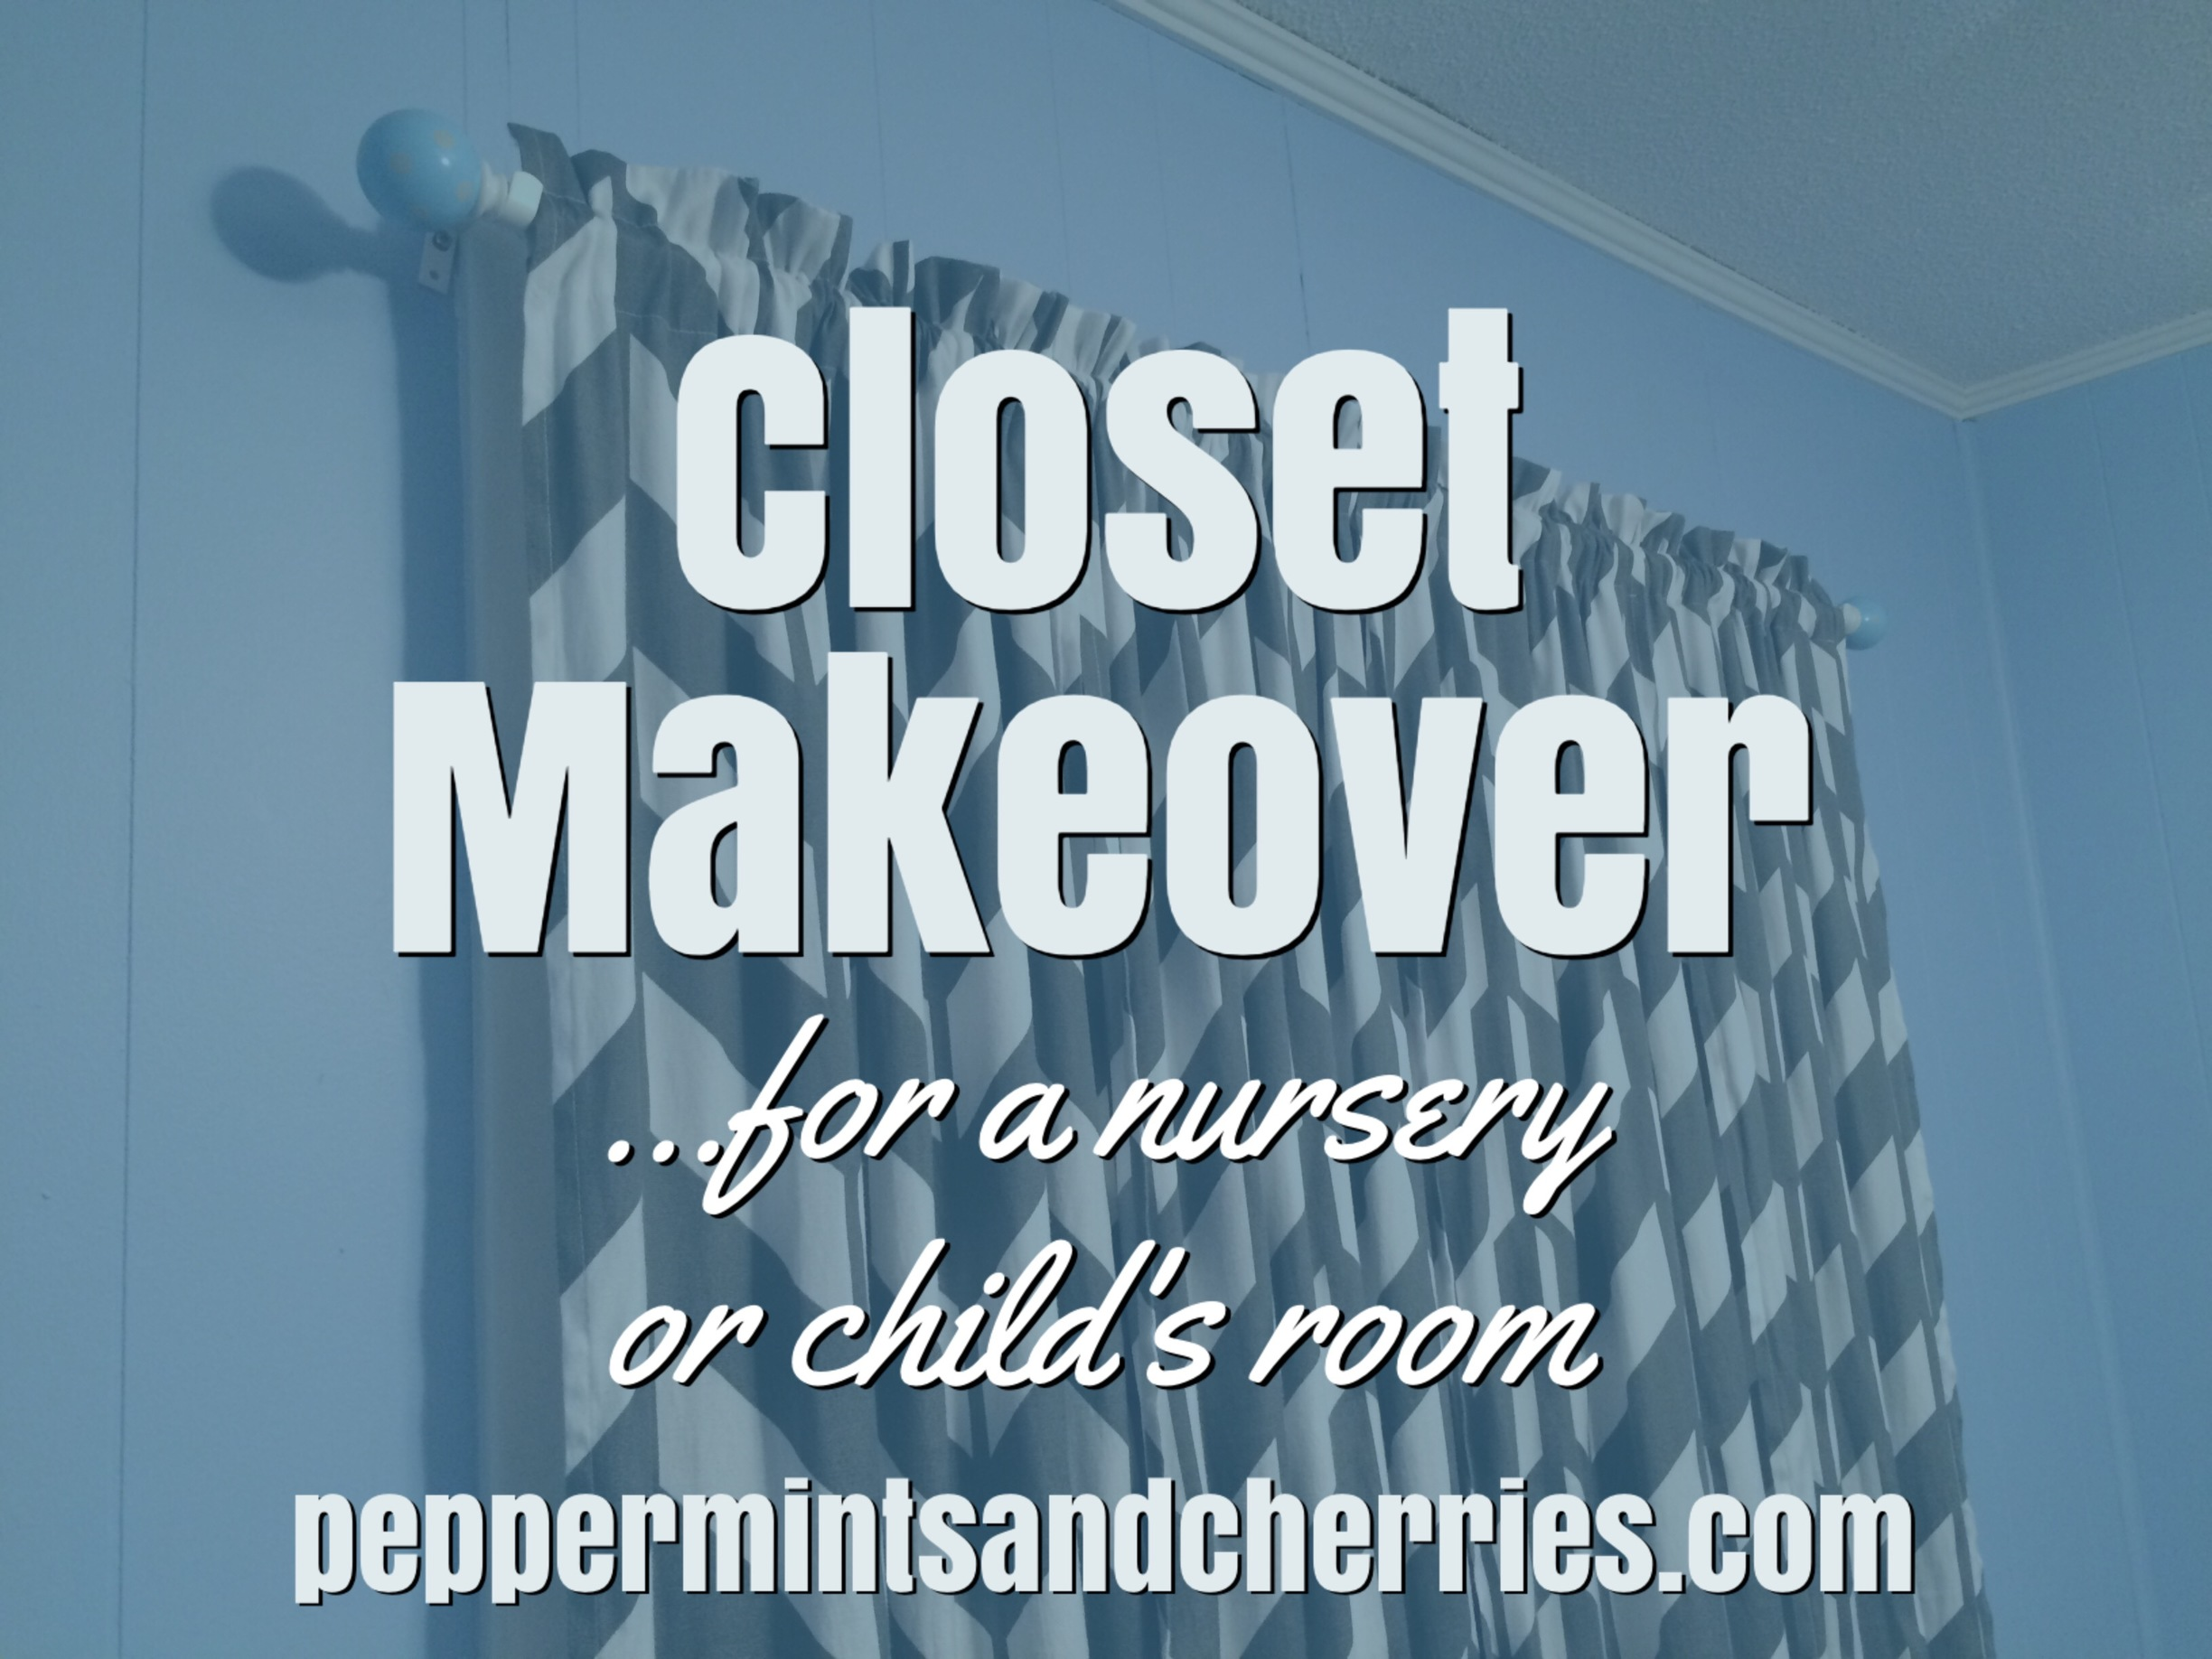 Closet Makeover for a Nursery or Child's Room